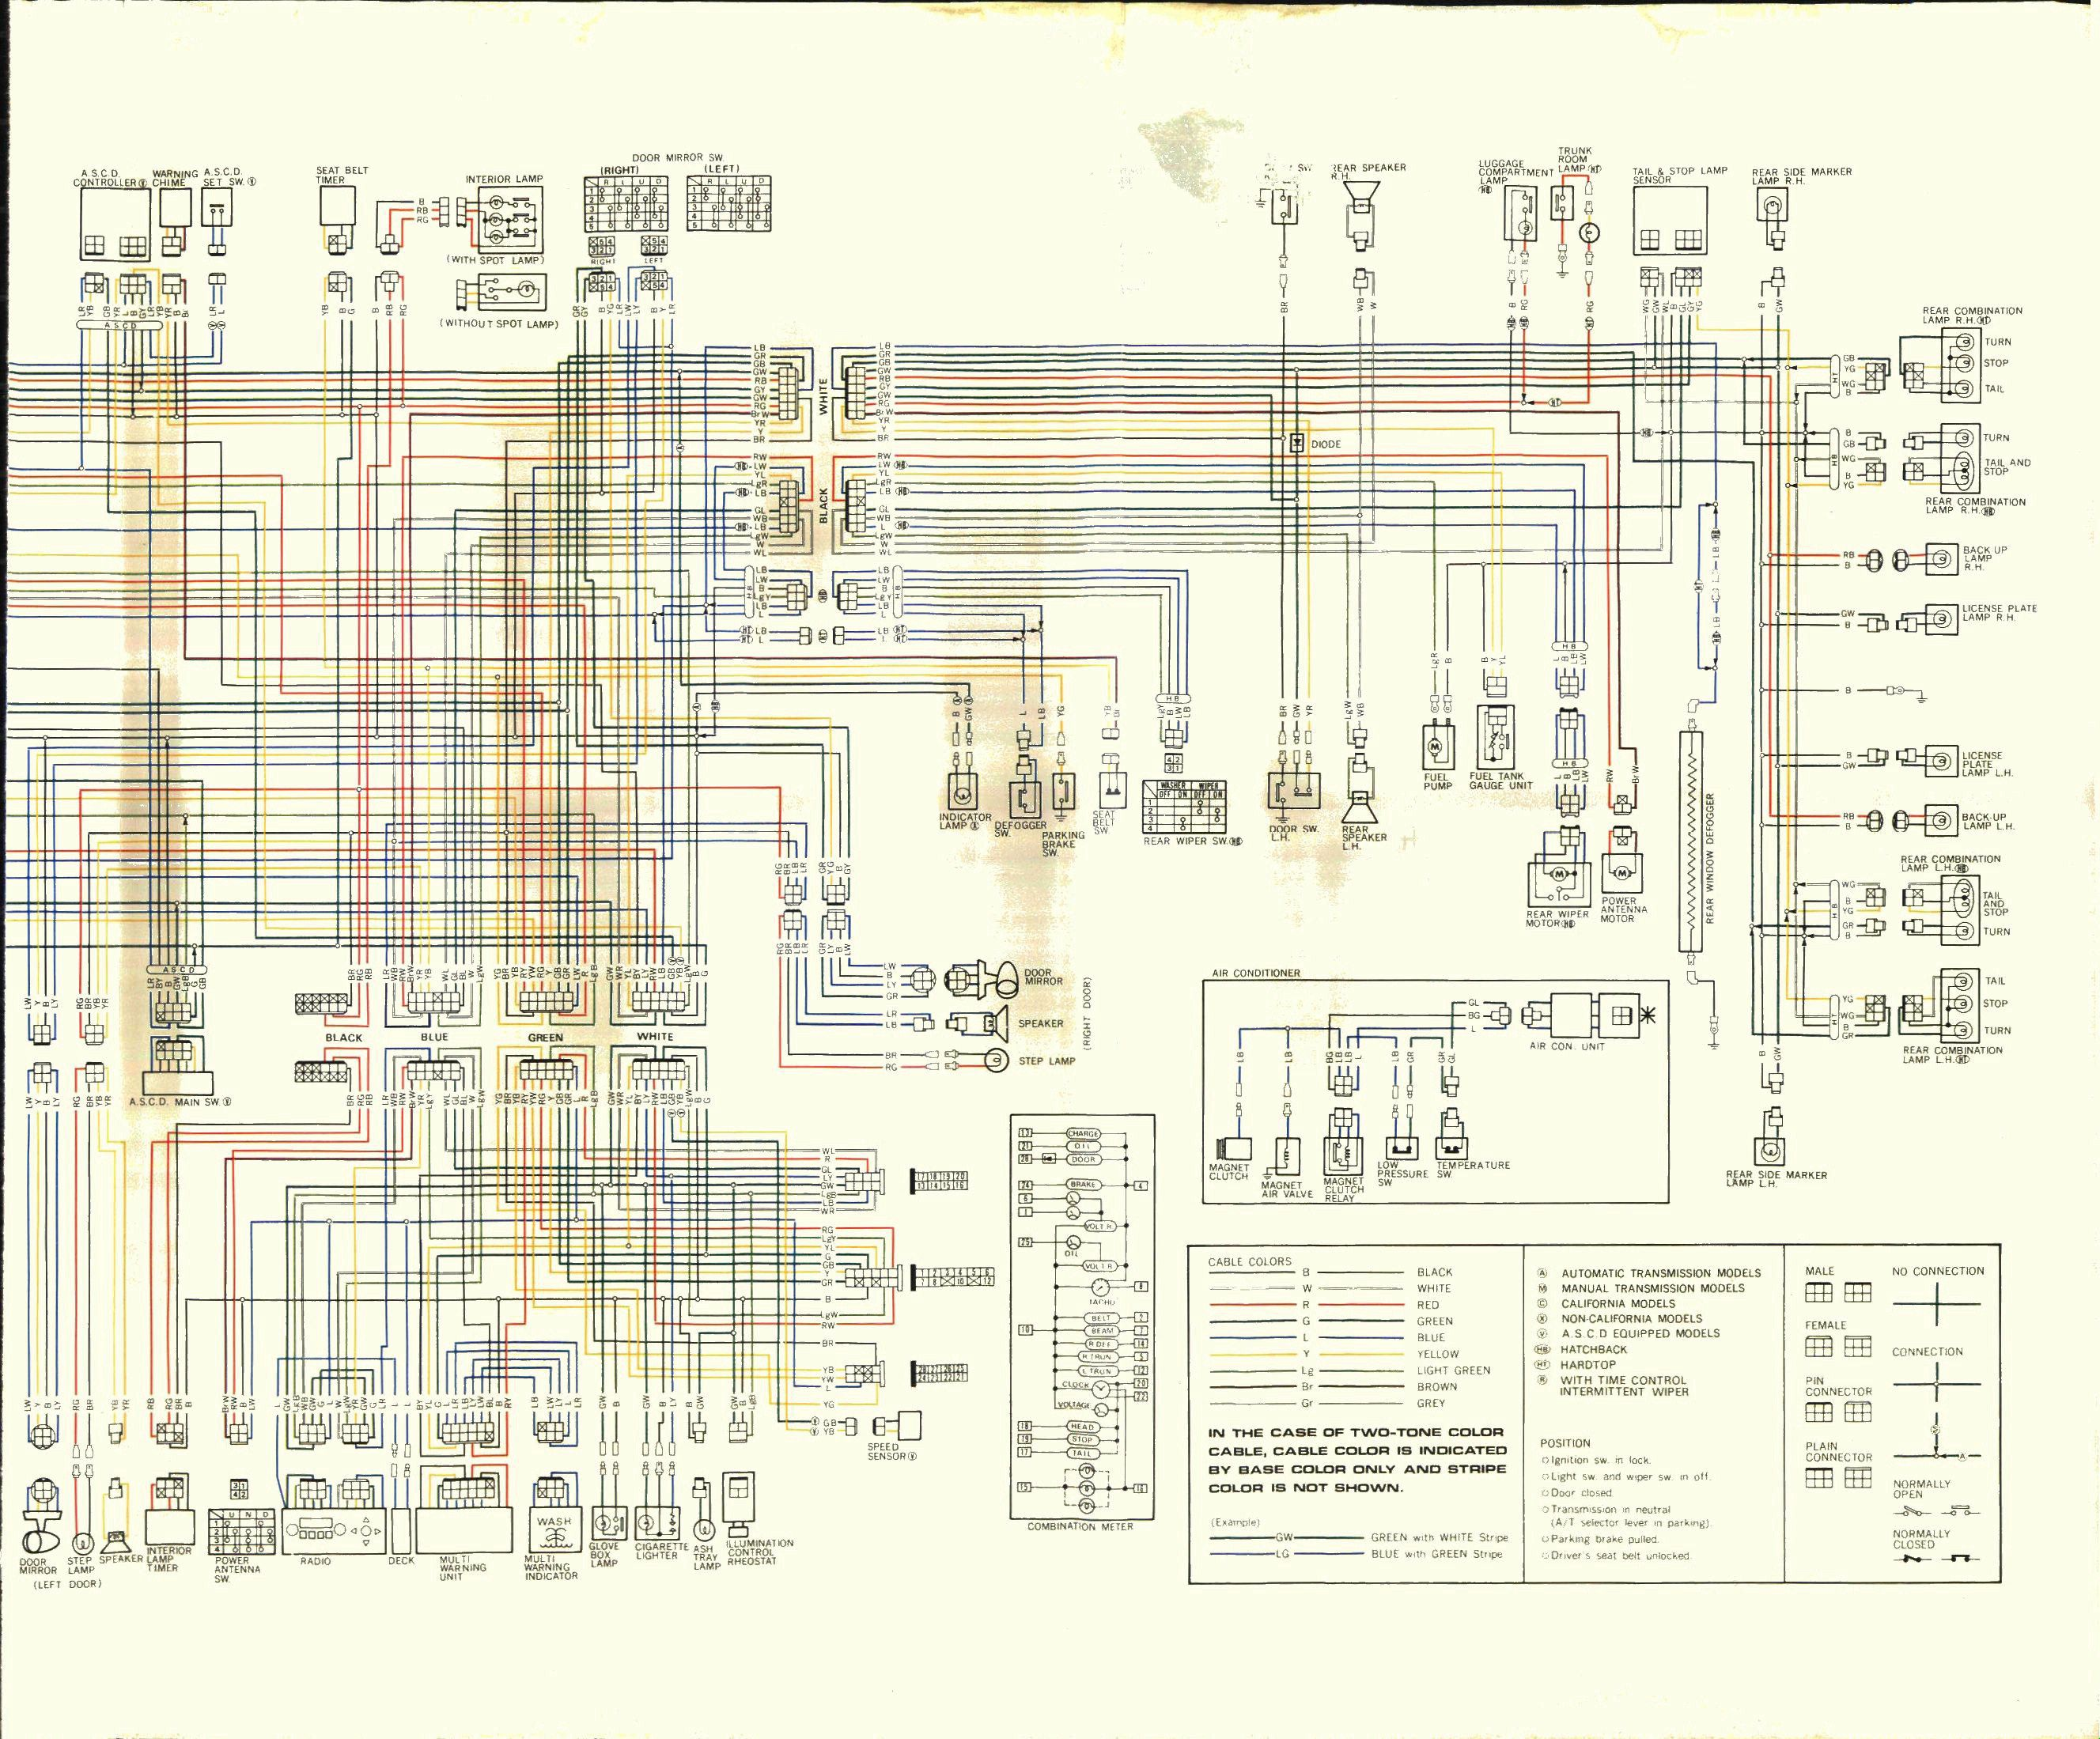 datsun wiring diagram   21 wiring diagram images